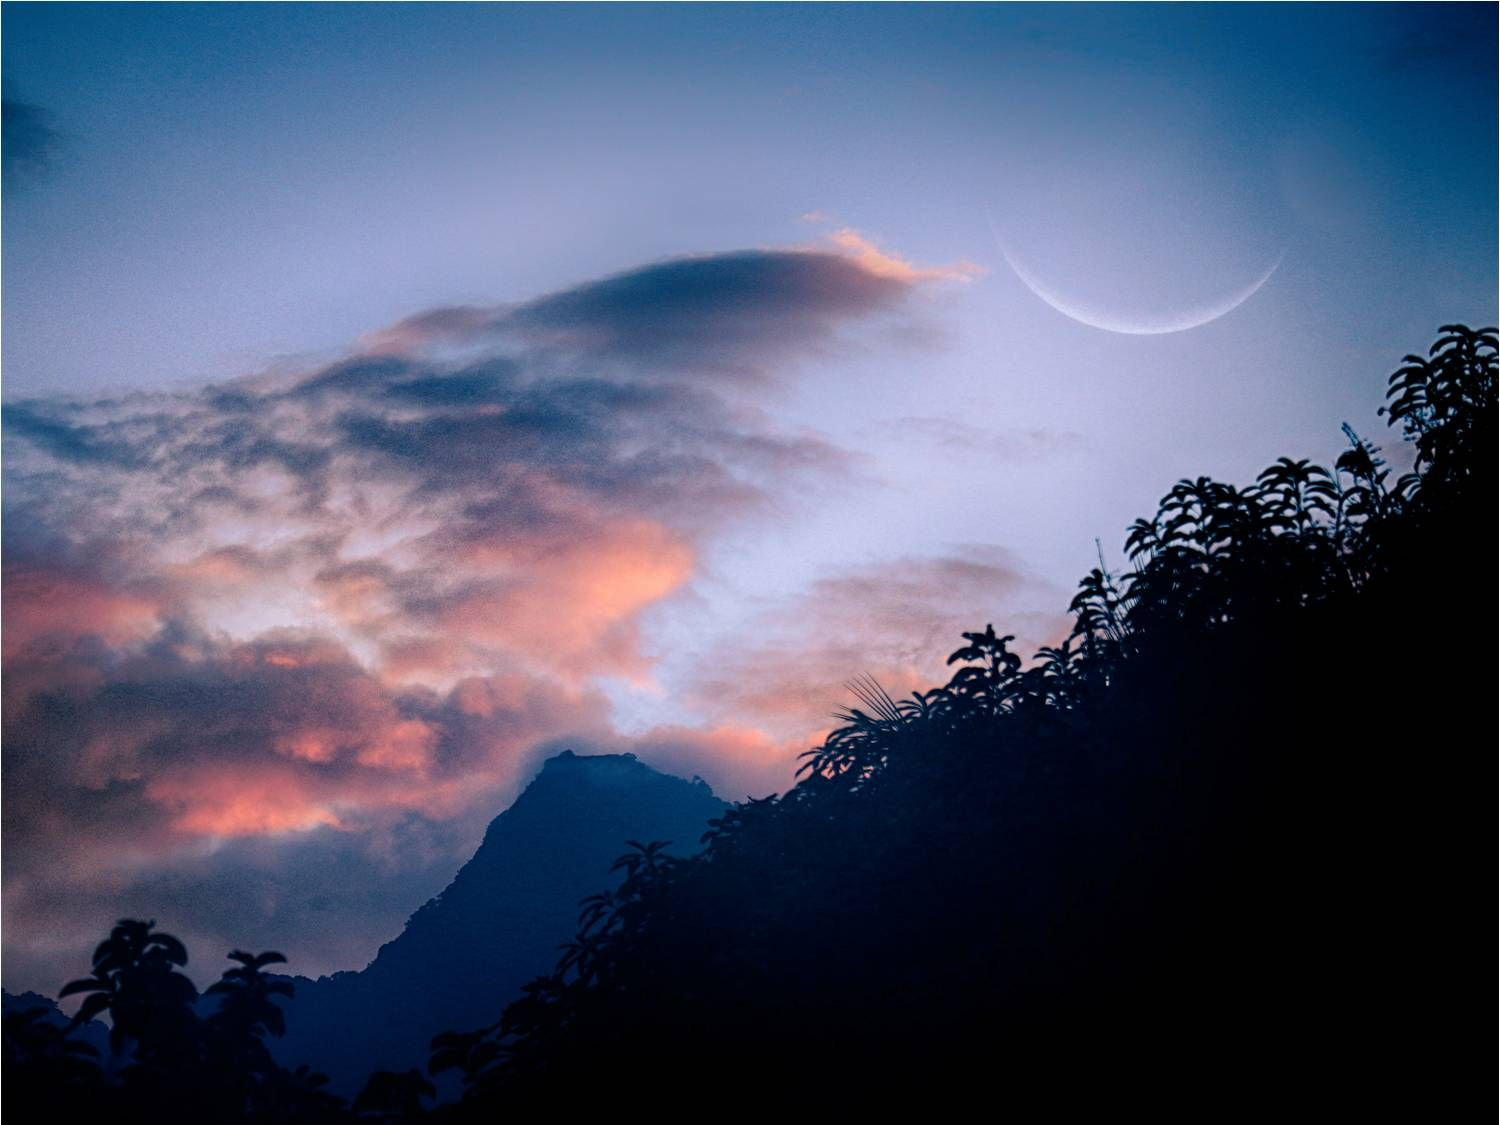 Jungle with steep mountain in distance and enormous crescent moon against the blue sky near pink clouds.